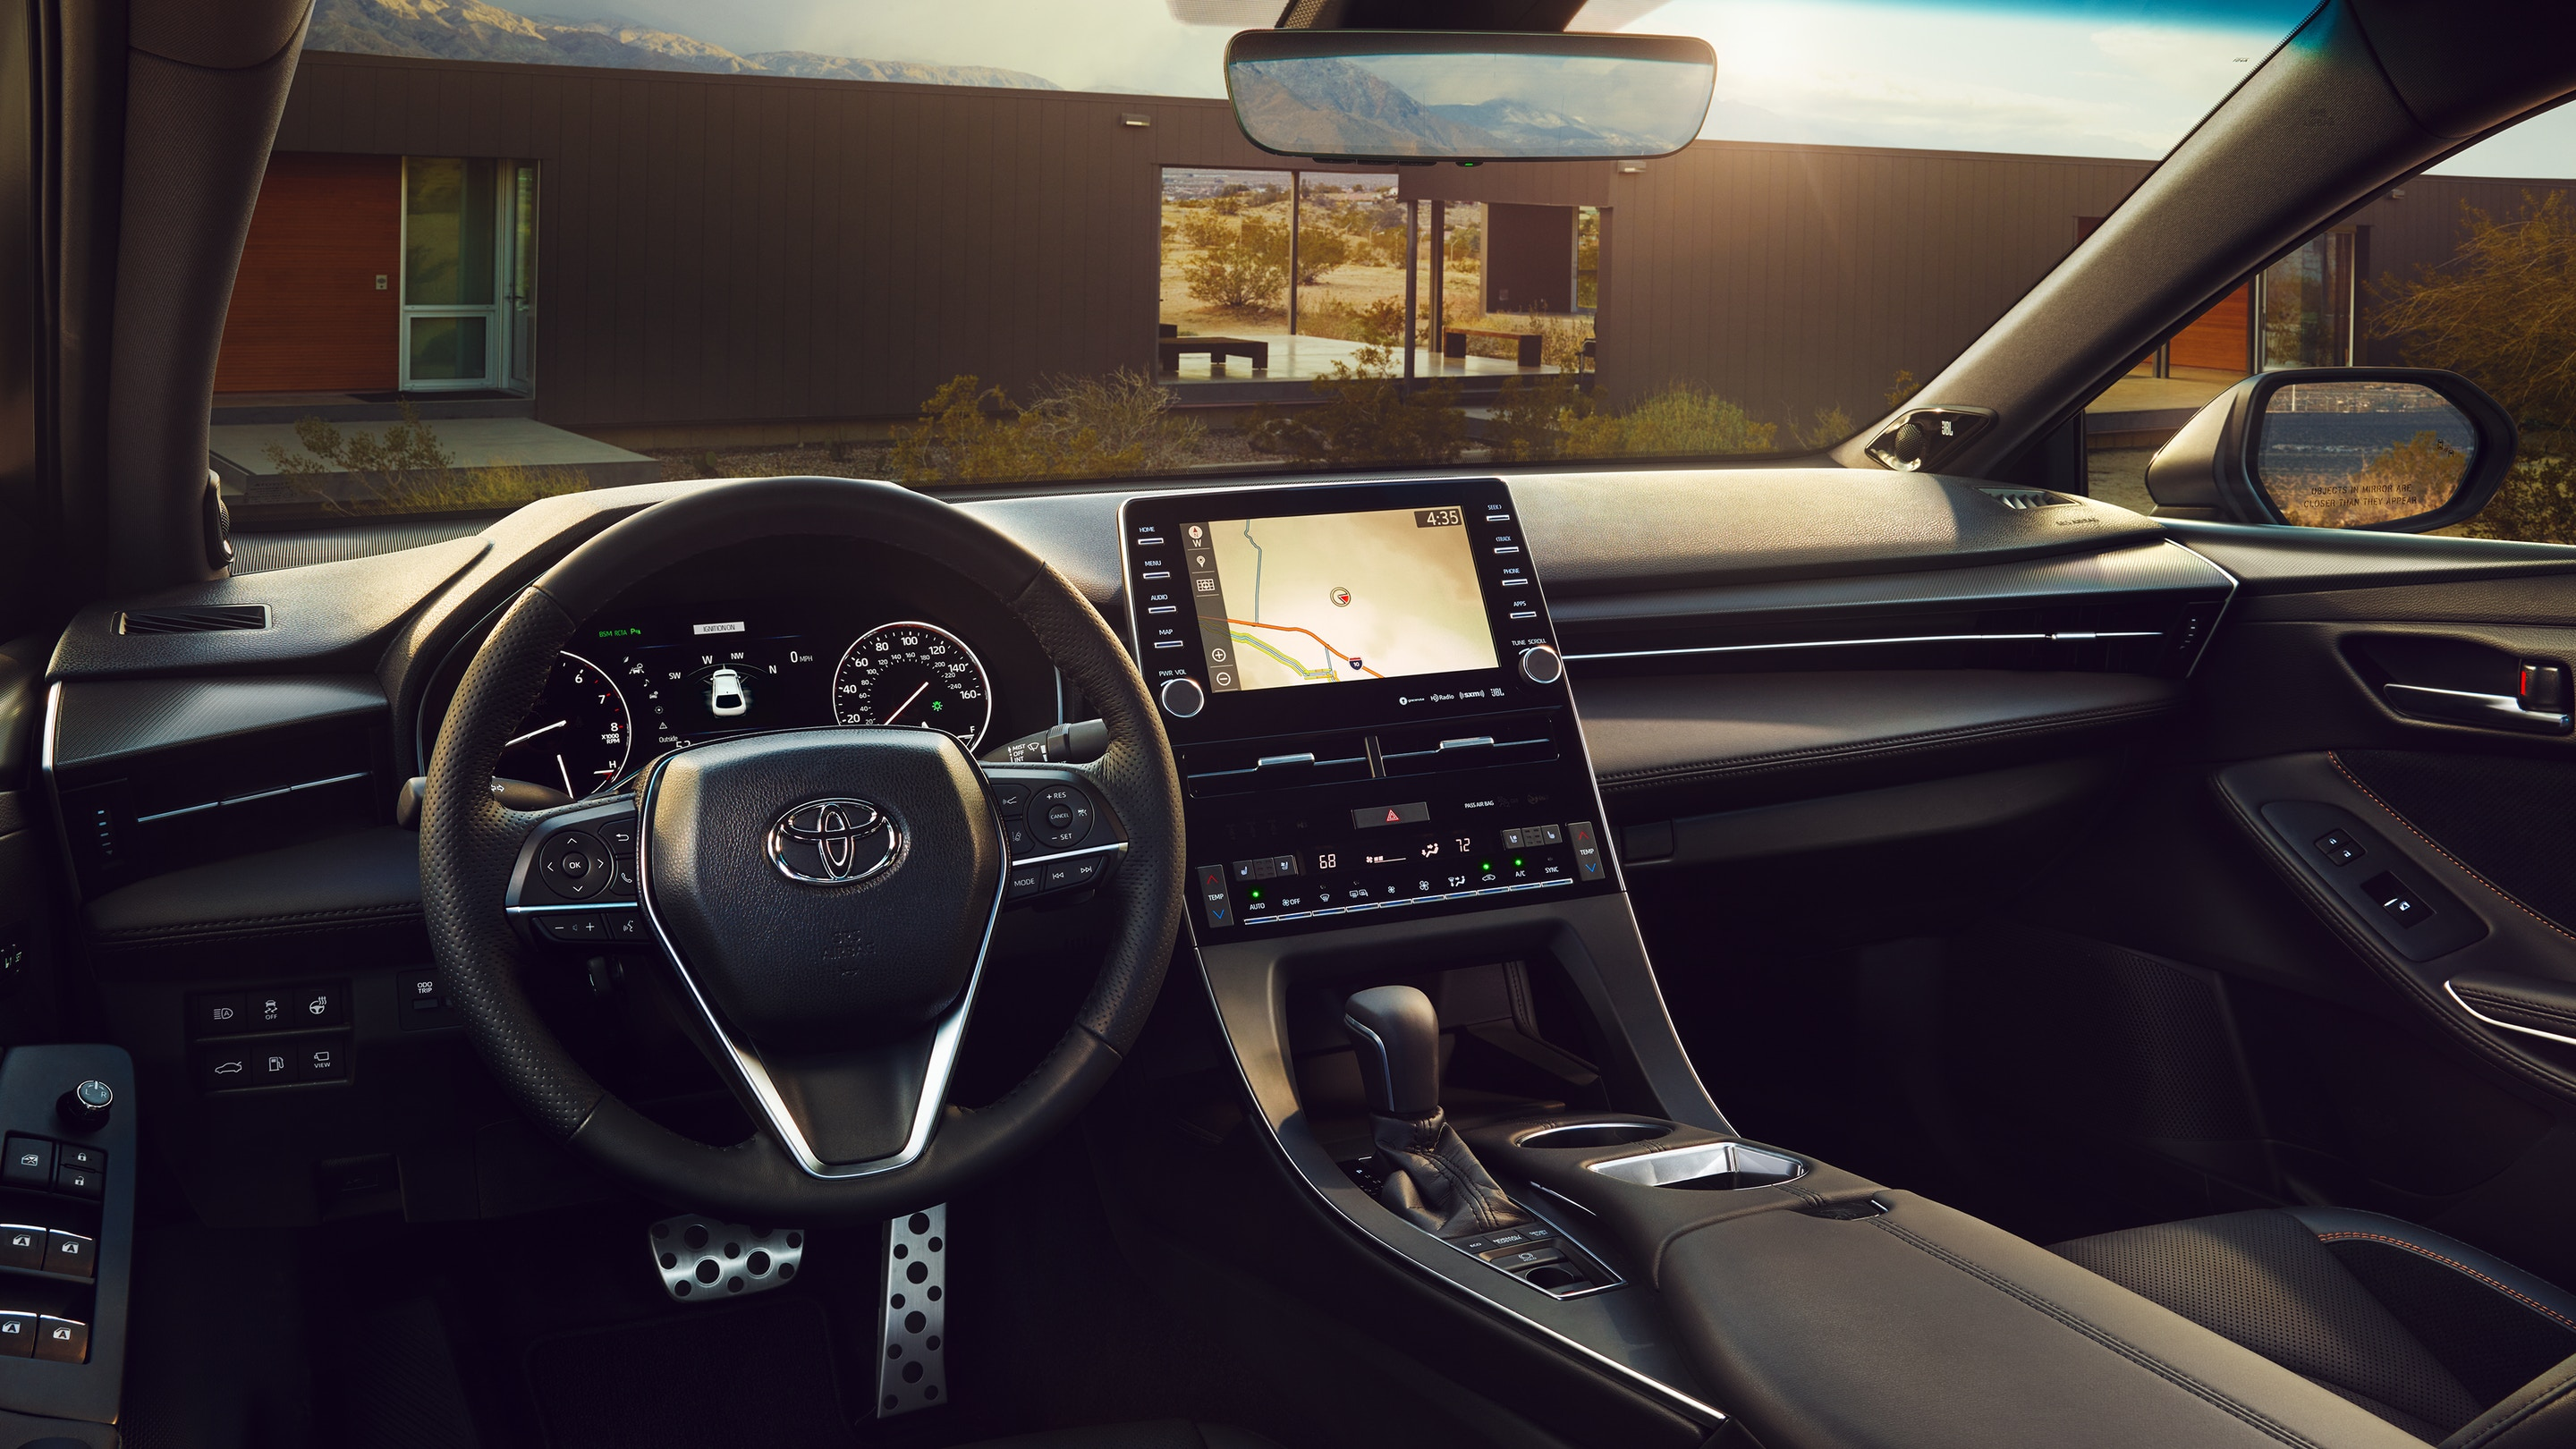 Accommodating Cabin of the Toyota Avalon